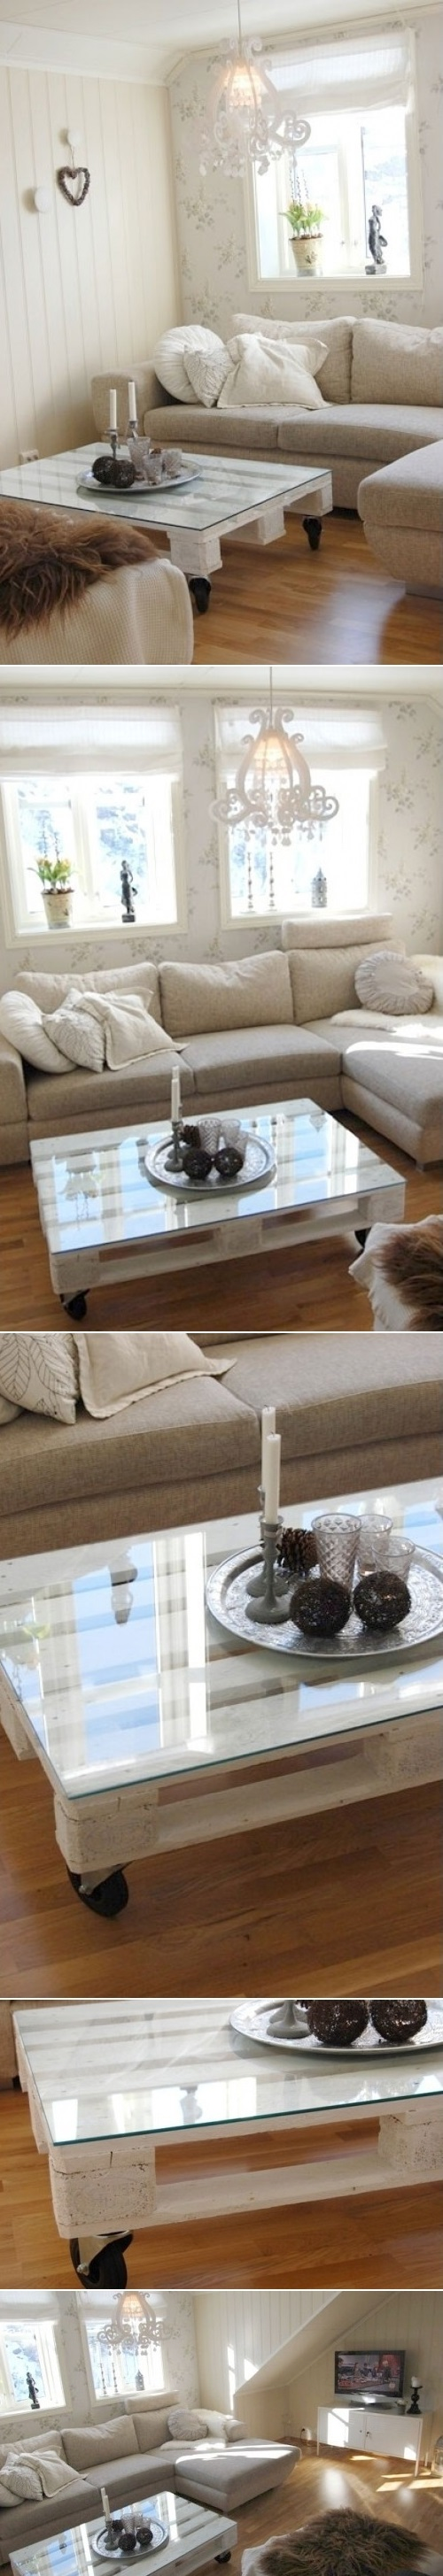 DIY Coffee Table from Wooden Pallet